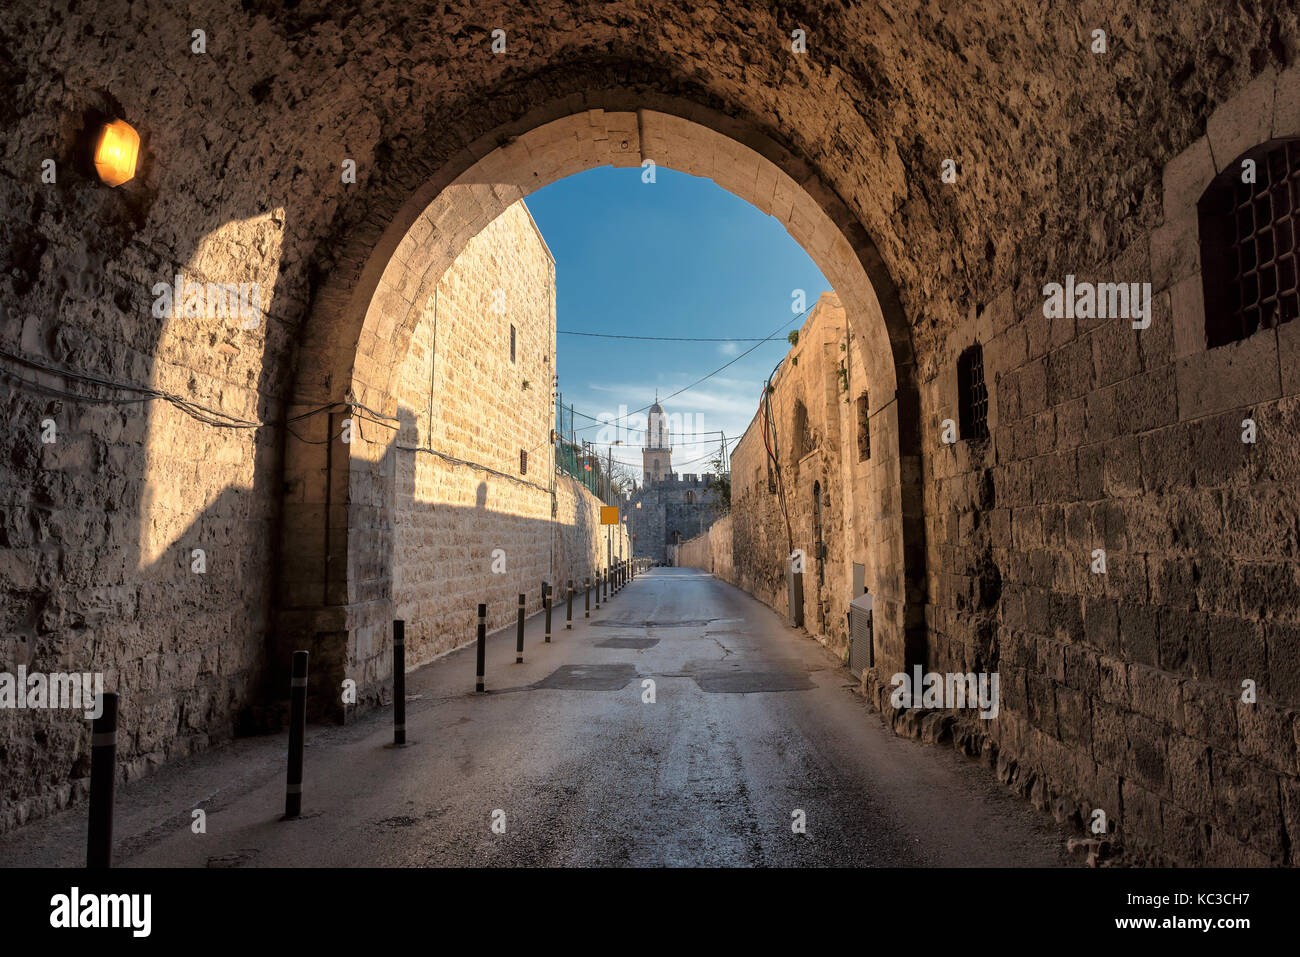 Jerusalem street in Old City, Israel. - Stock Image